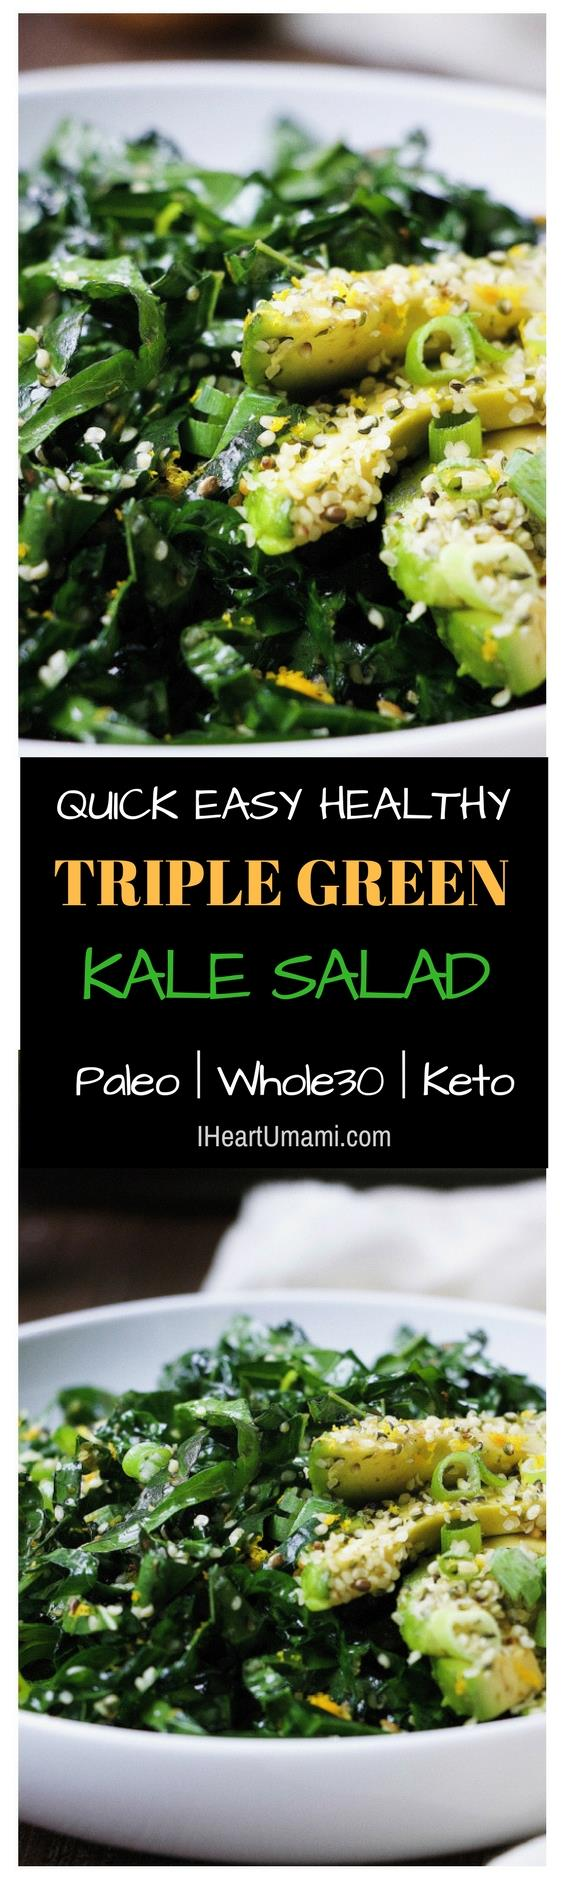 Paleo triple green kale salad ! Healthy easy Kale salad recipe with avocado, snow peas, and hemp seeds in light Asian soy-free ginger sesame dressing. Whole30, Keto, and vegan friendly ! Follow the link to save this recipe. It'll become your go-to kale salad recipe !